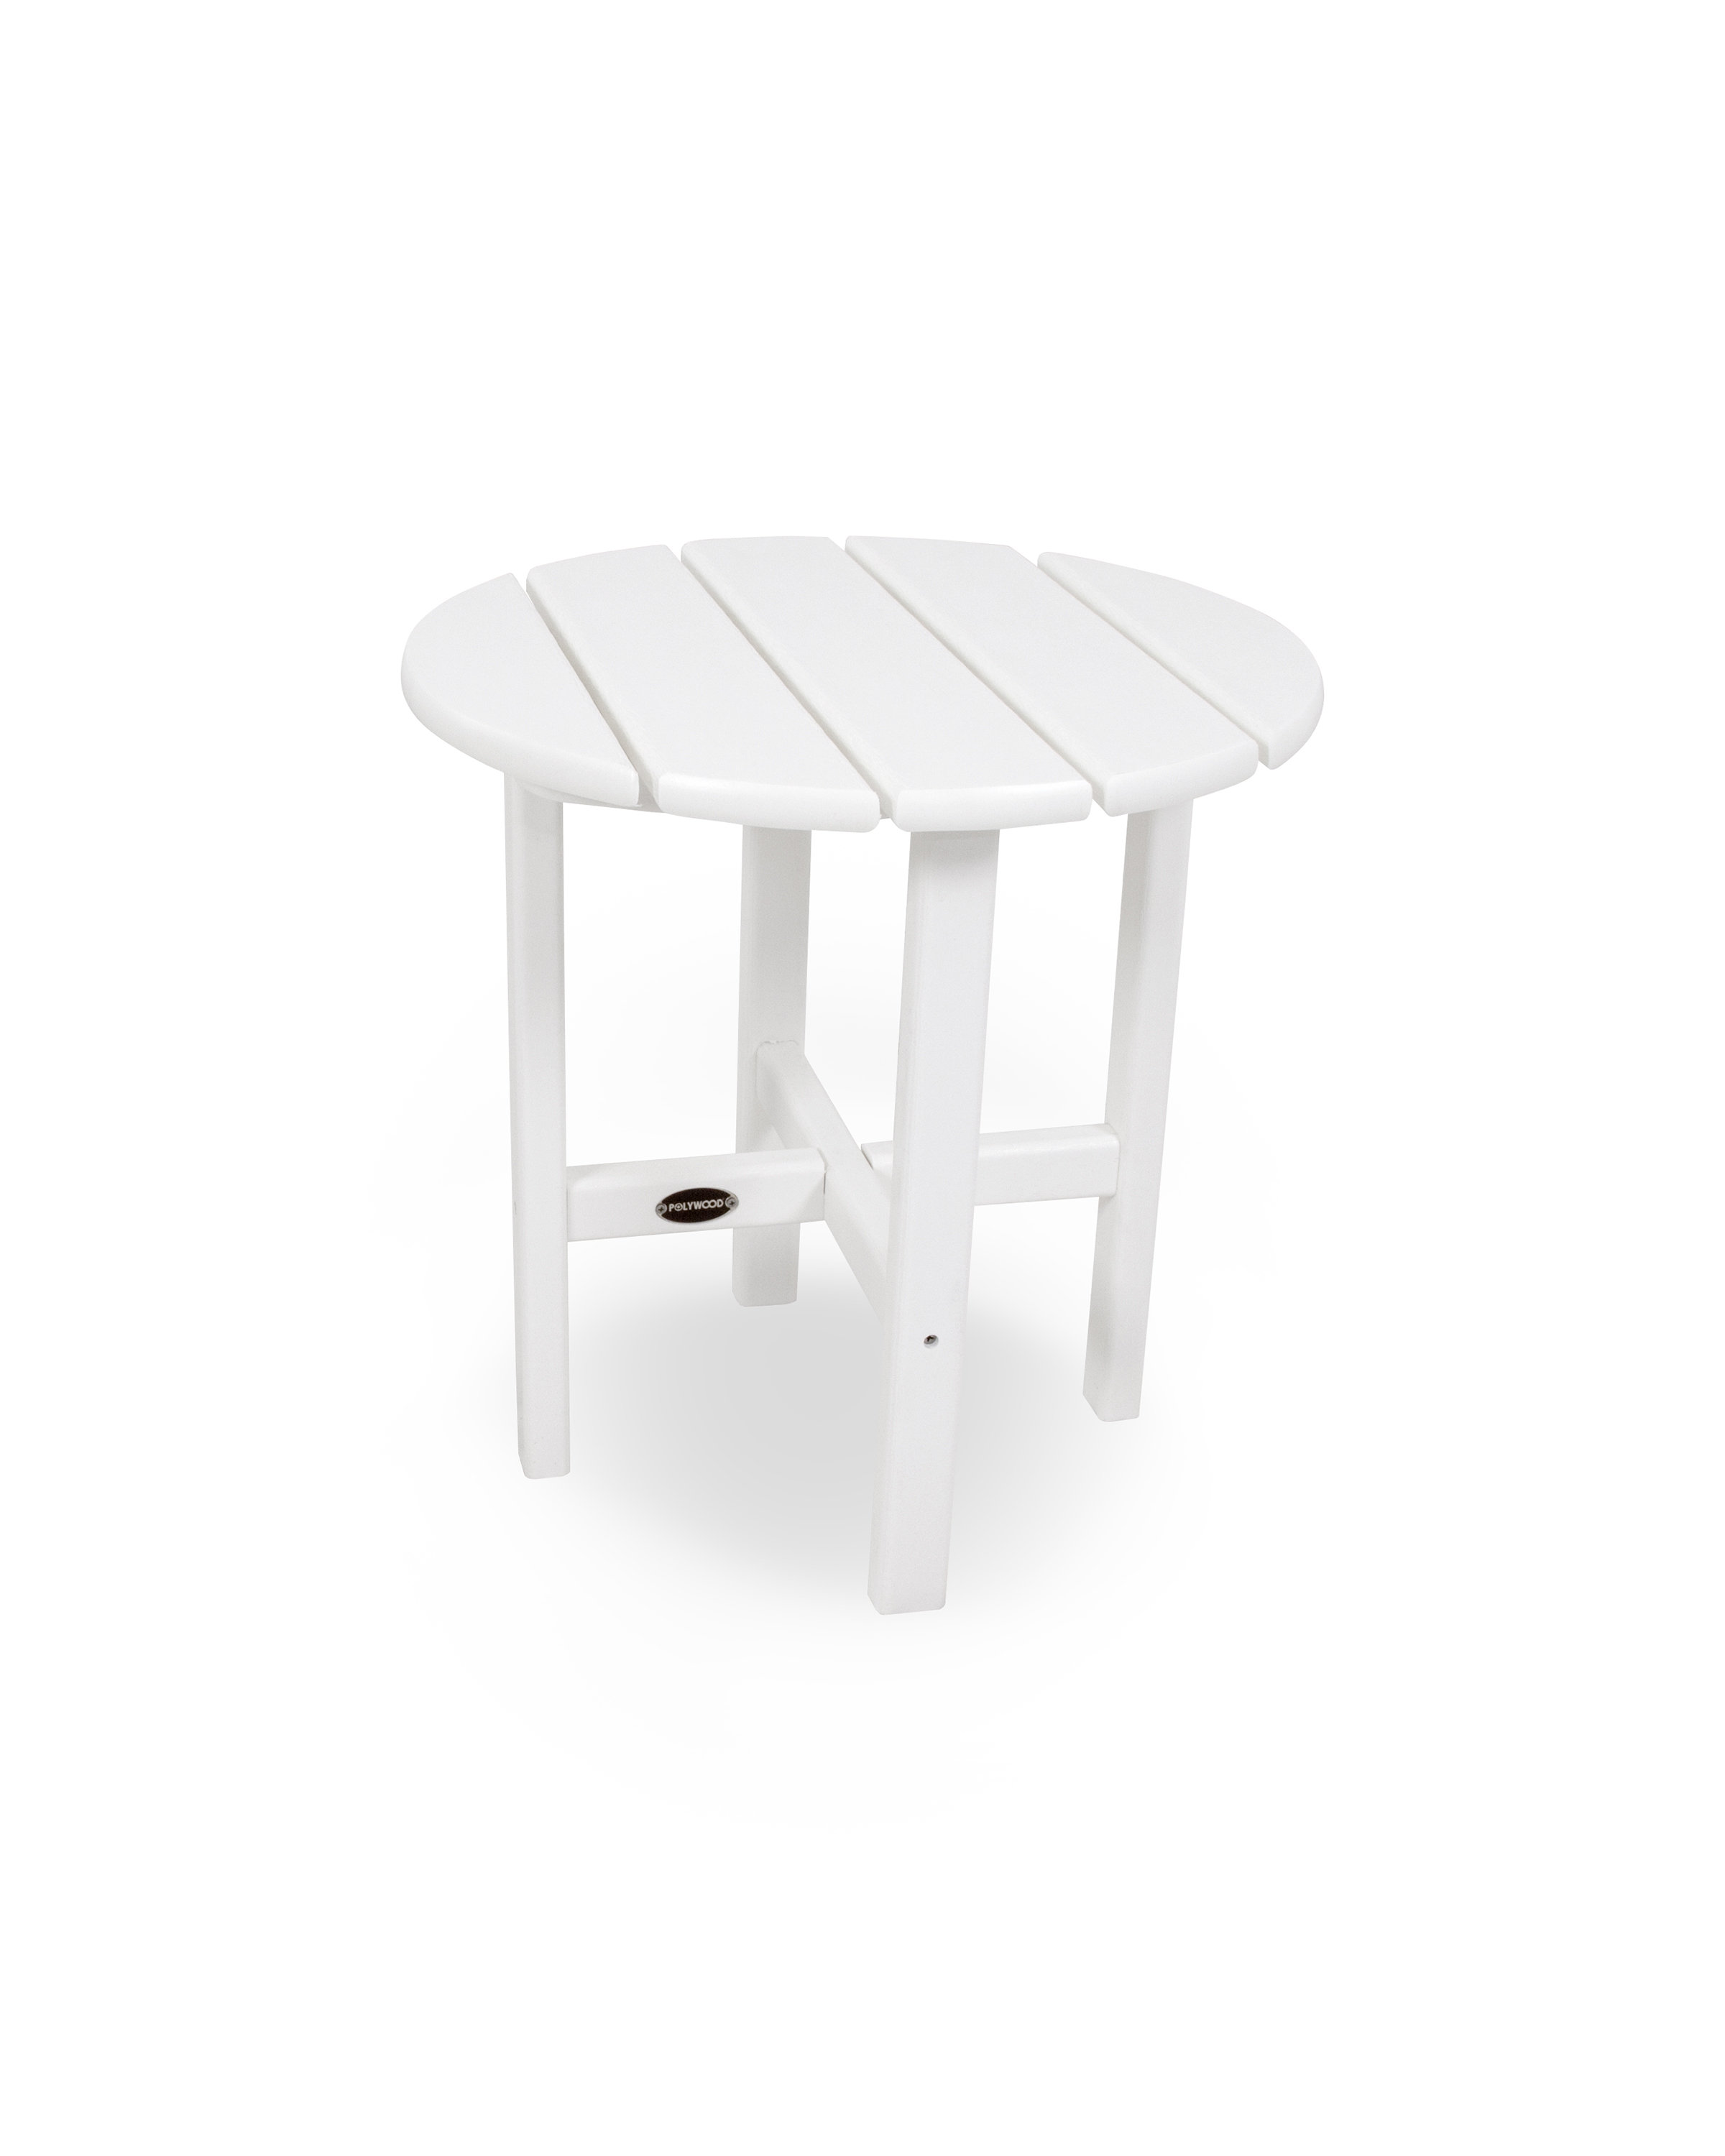 polywood side table reviews accent groups christmas runner narrow console with storage entry decor ideas white wood coffee and end tables best home items inch windham door cabinet